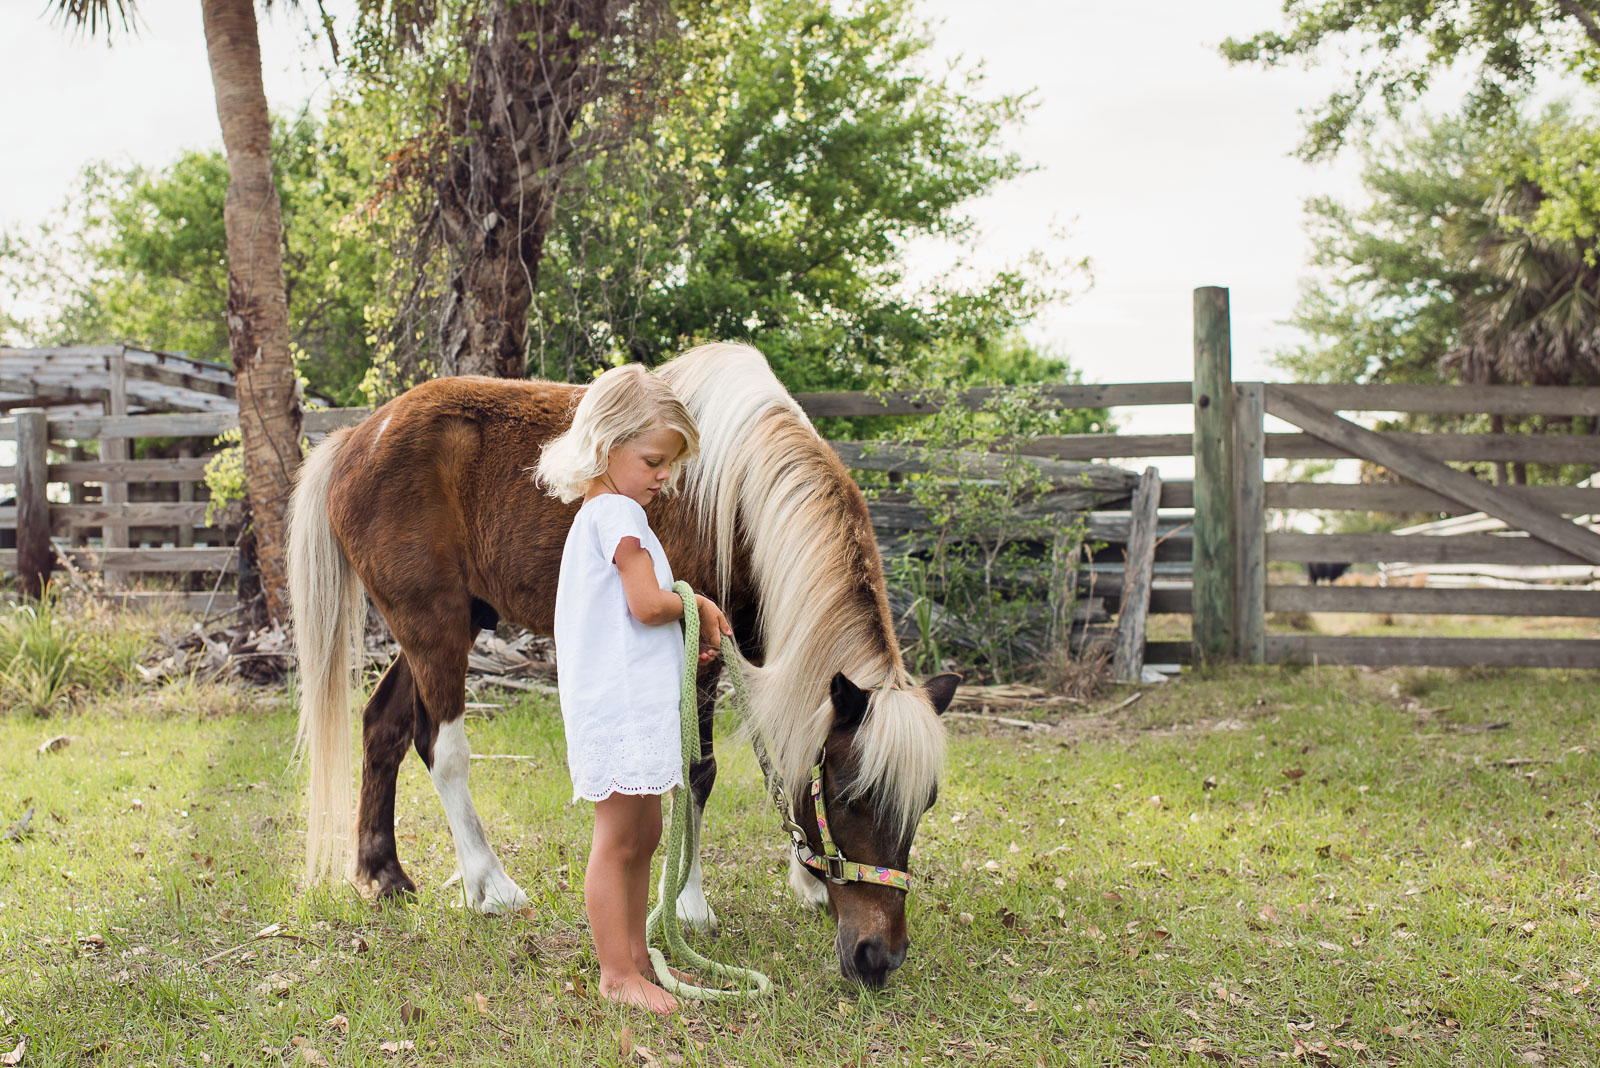 photo-sessions-children-animals-01-5.jpg